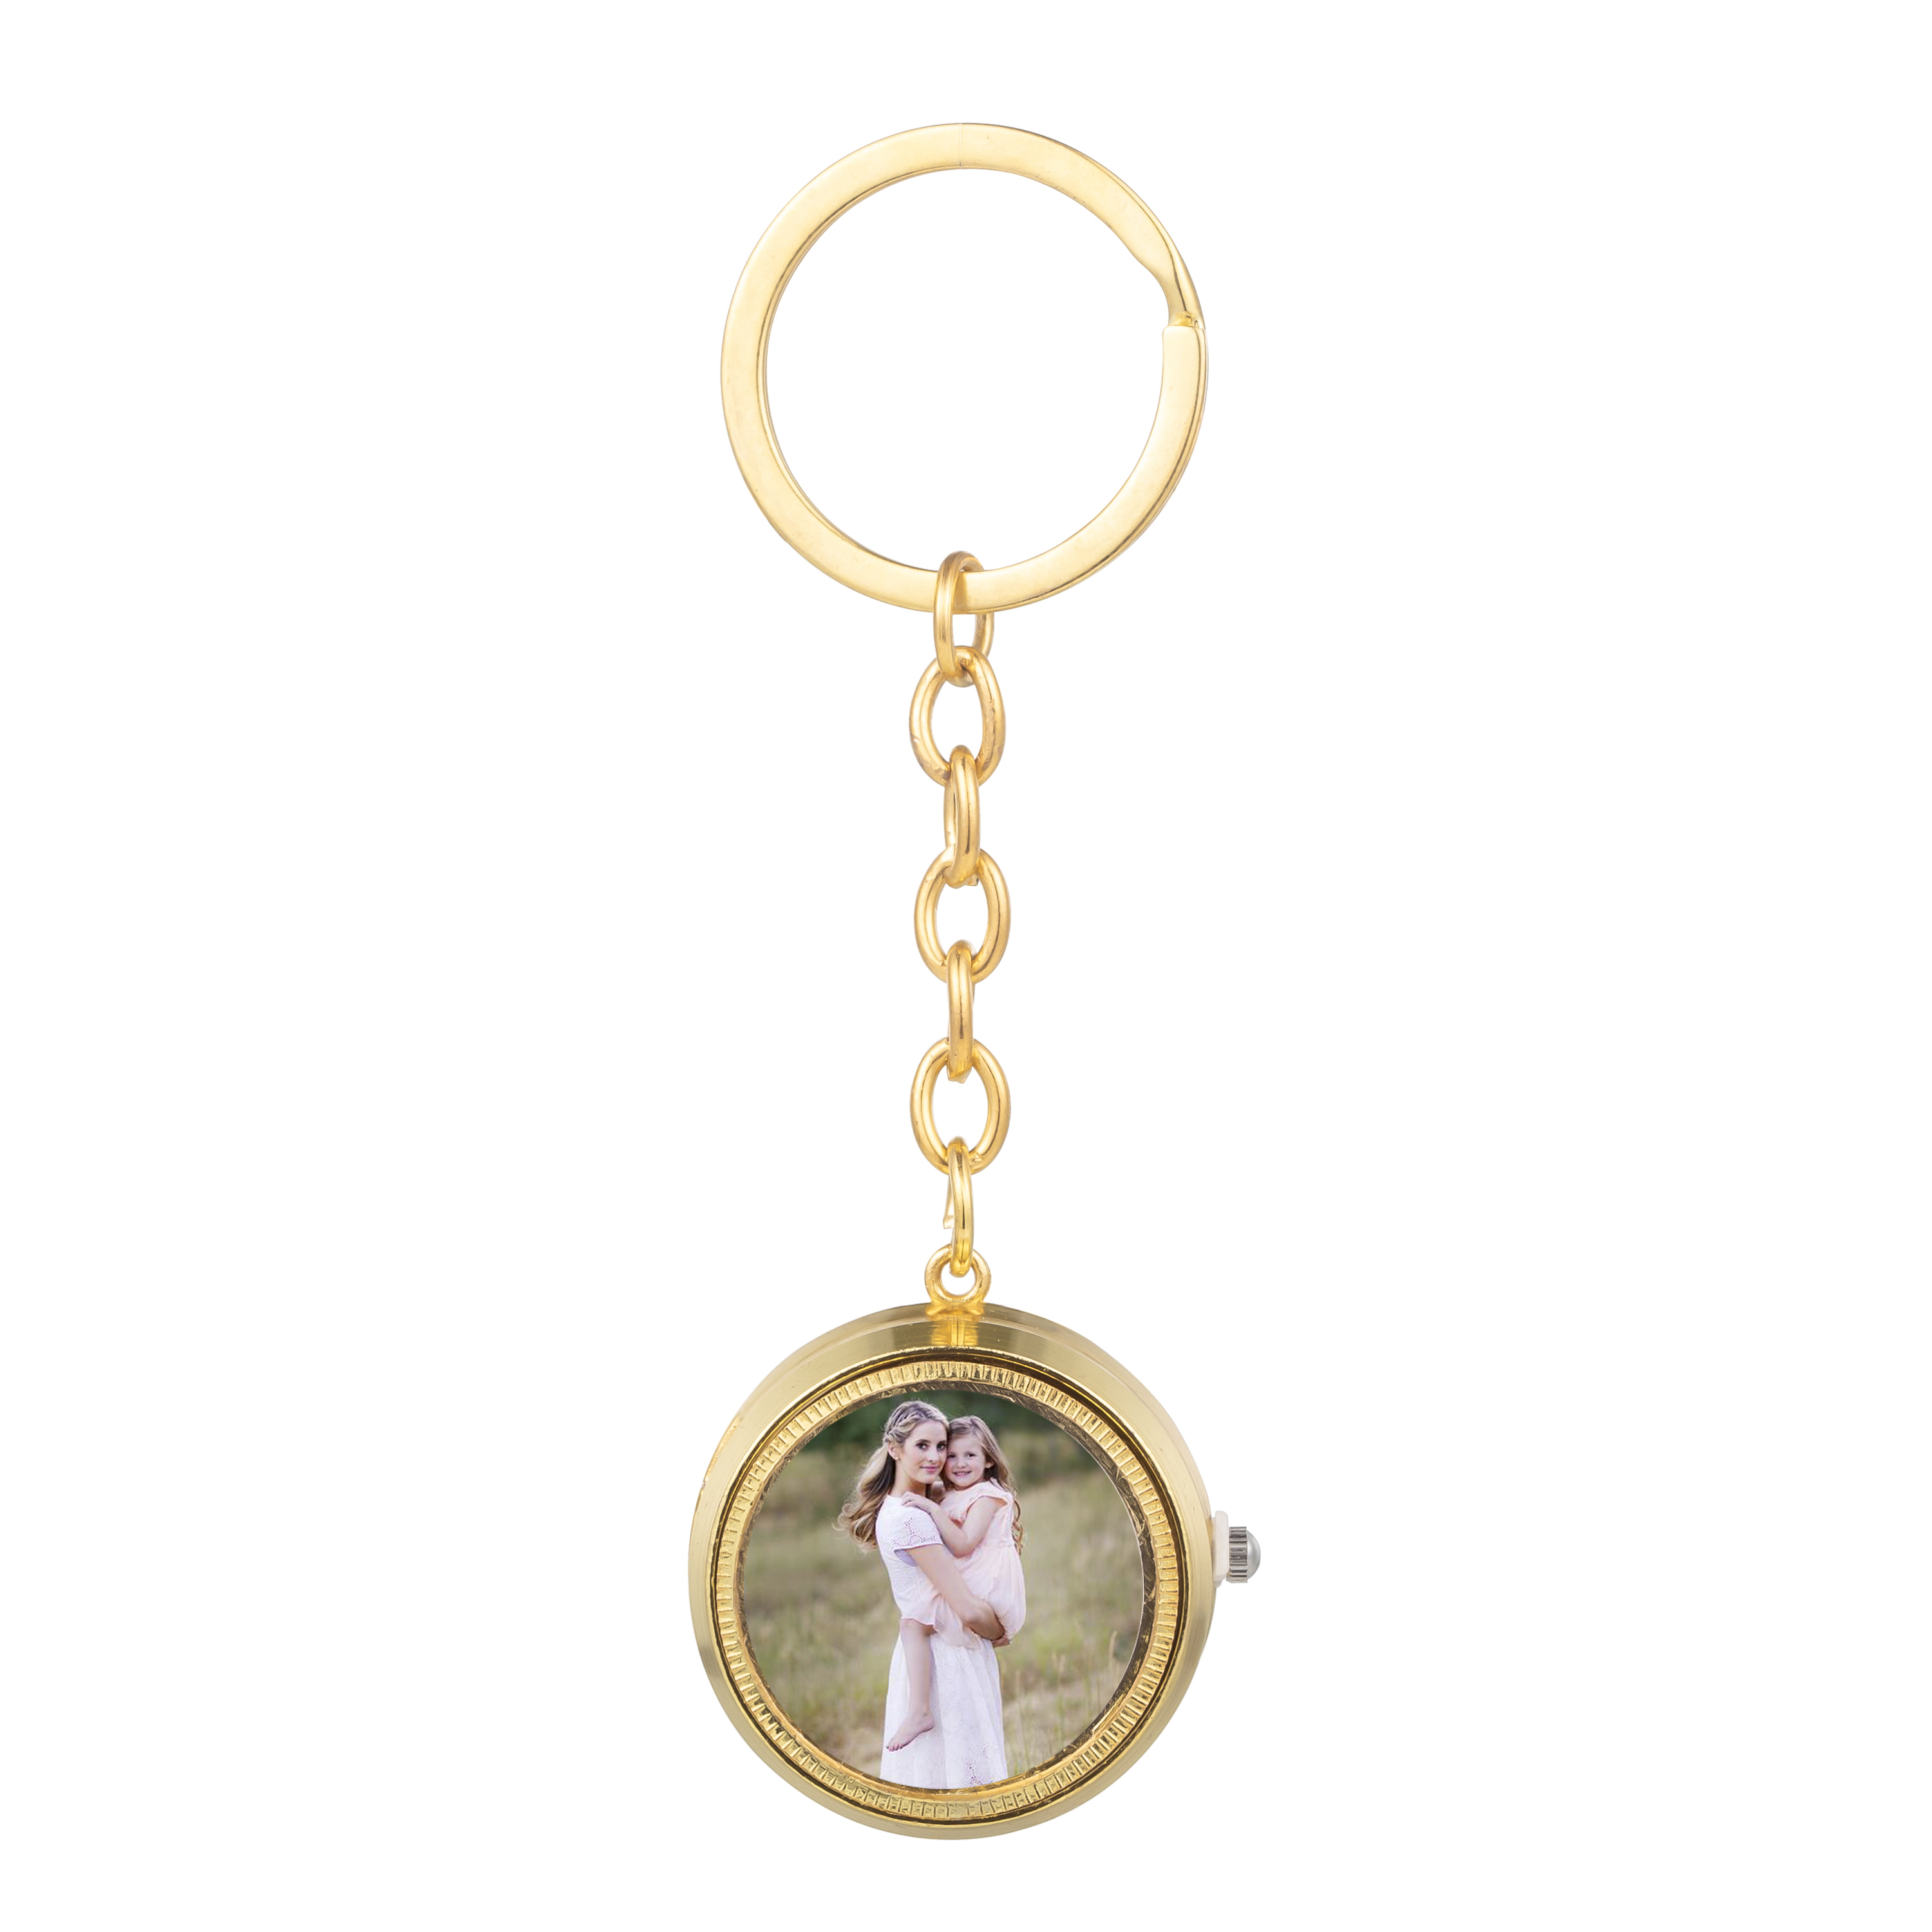 Personalized Picture Rotatable Pocket Watch Custom Keychain For Women Photo Silver /Glod Color Choker Memorial Key Chain